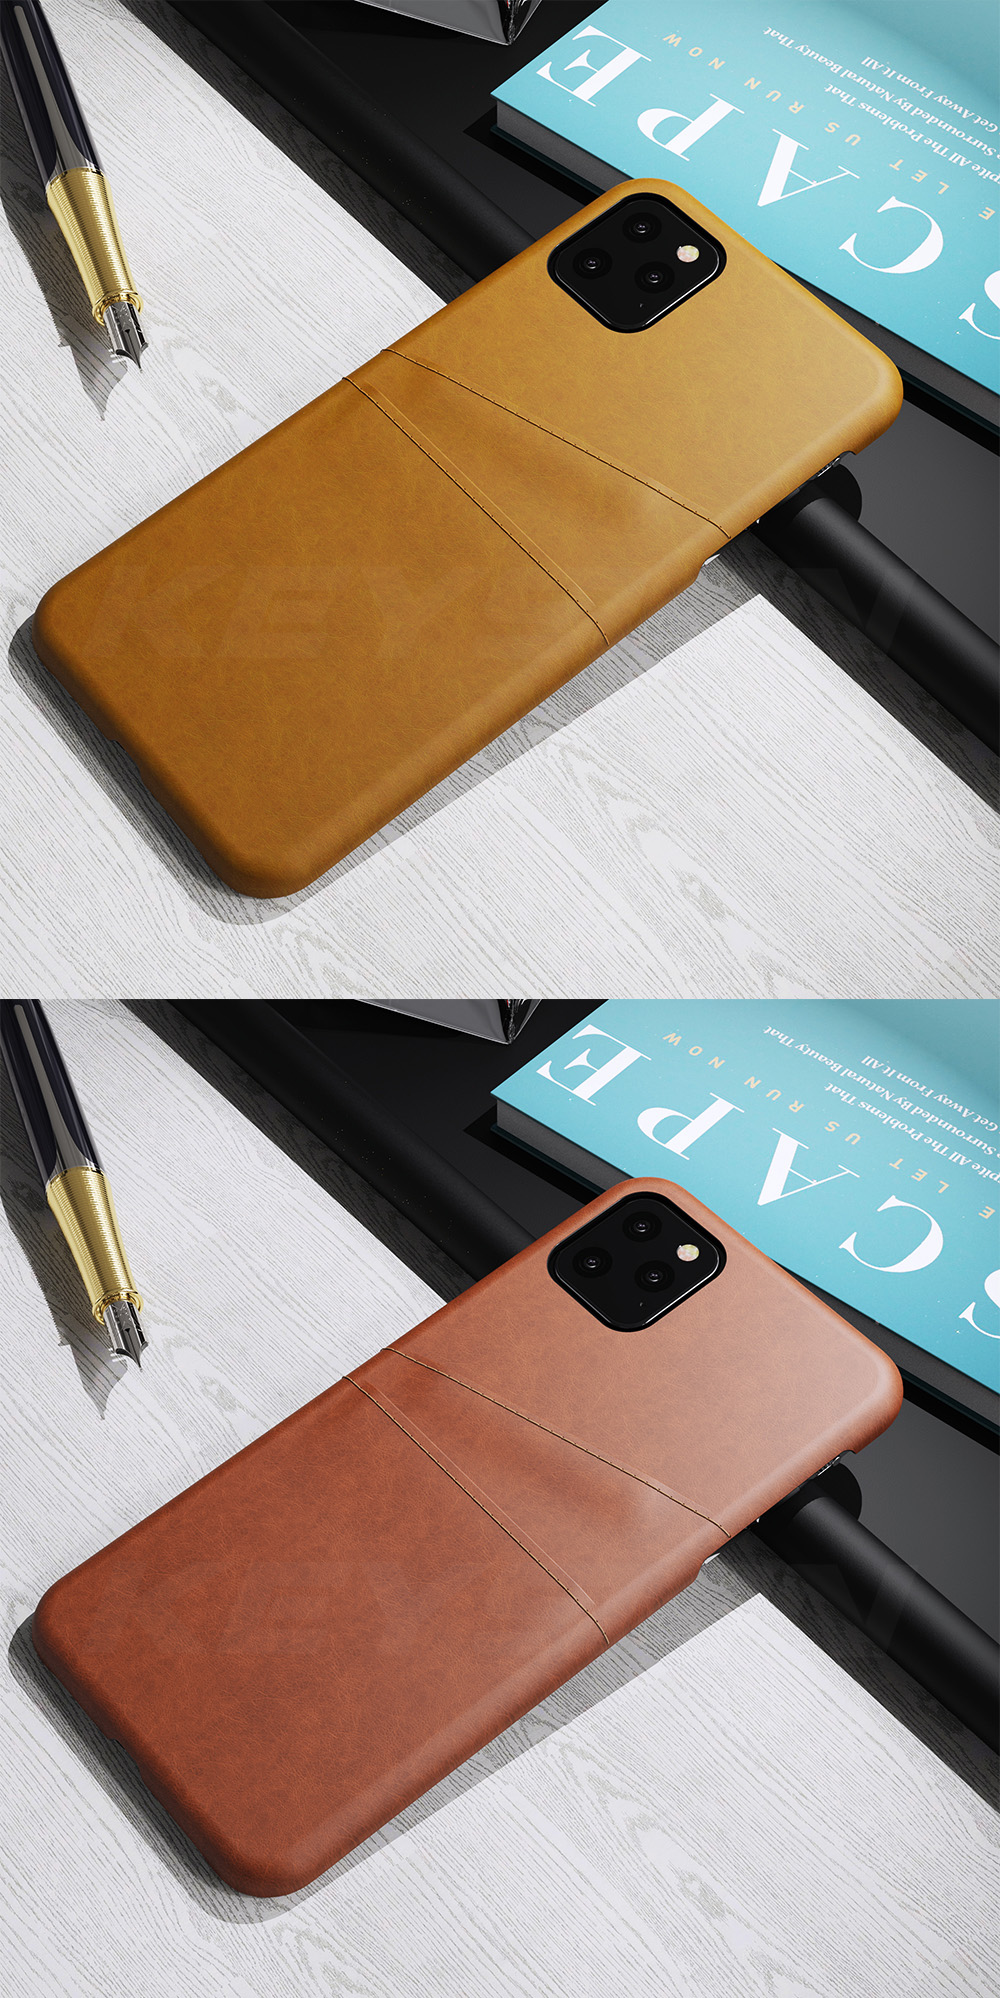 KEYSION Leather Card Pocket Cases for iPhone 11/11 Pro/11 Pro Max 4